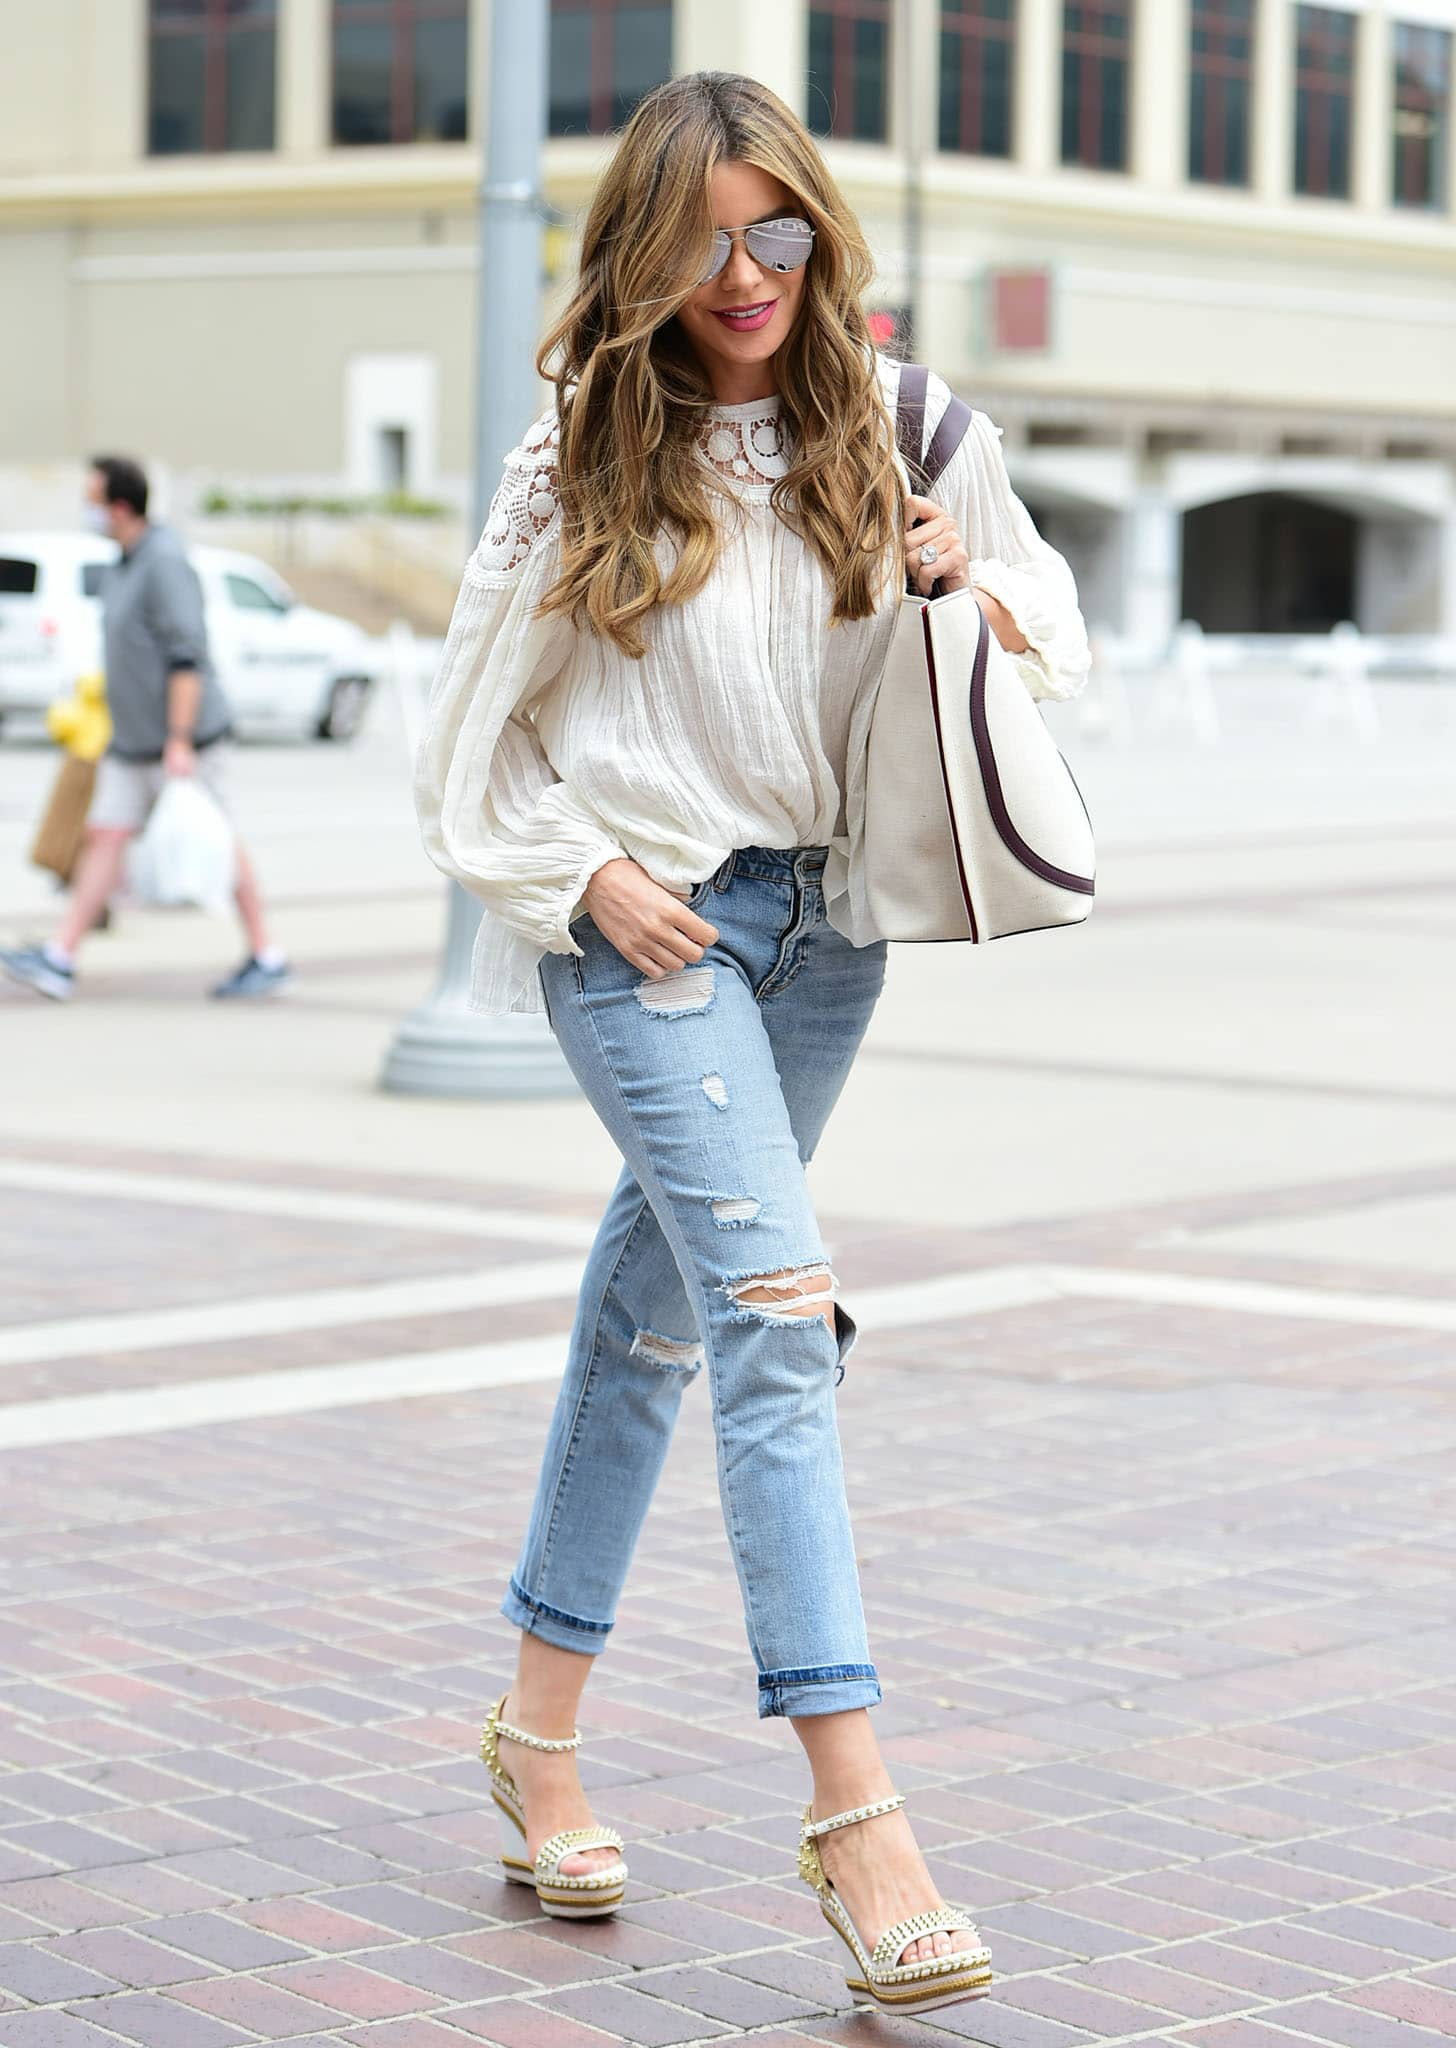 Sofia Vergara flaunts her shapely legs in Sofia Jeans boyfriend jeans and a white chiffon blouse at America's Got Talent studios